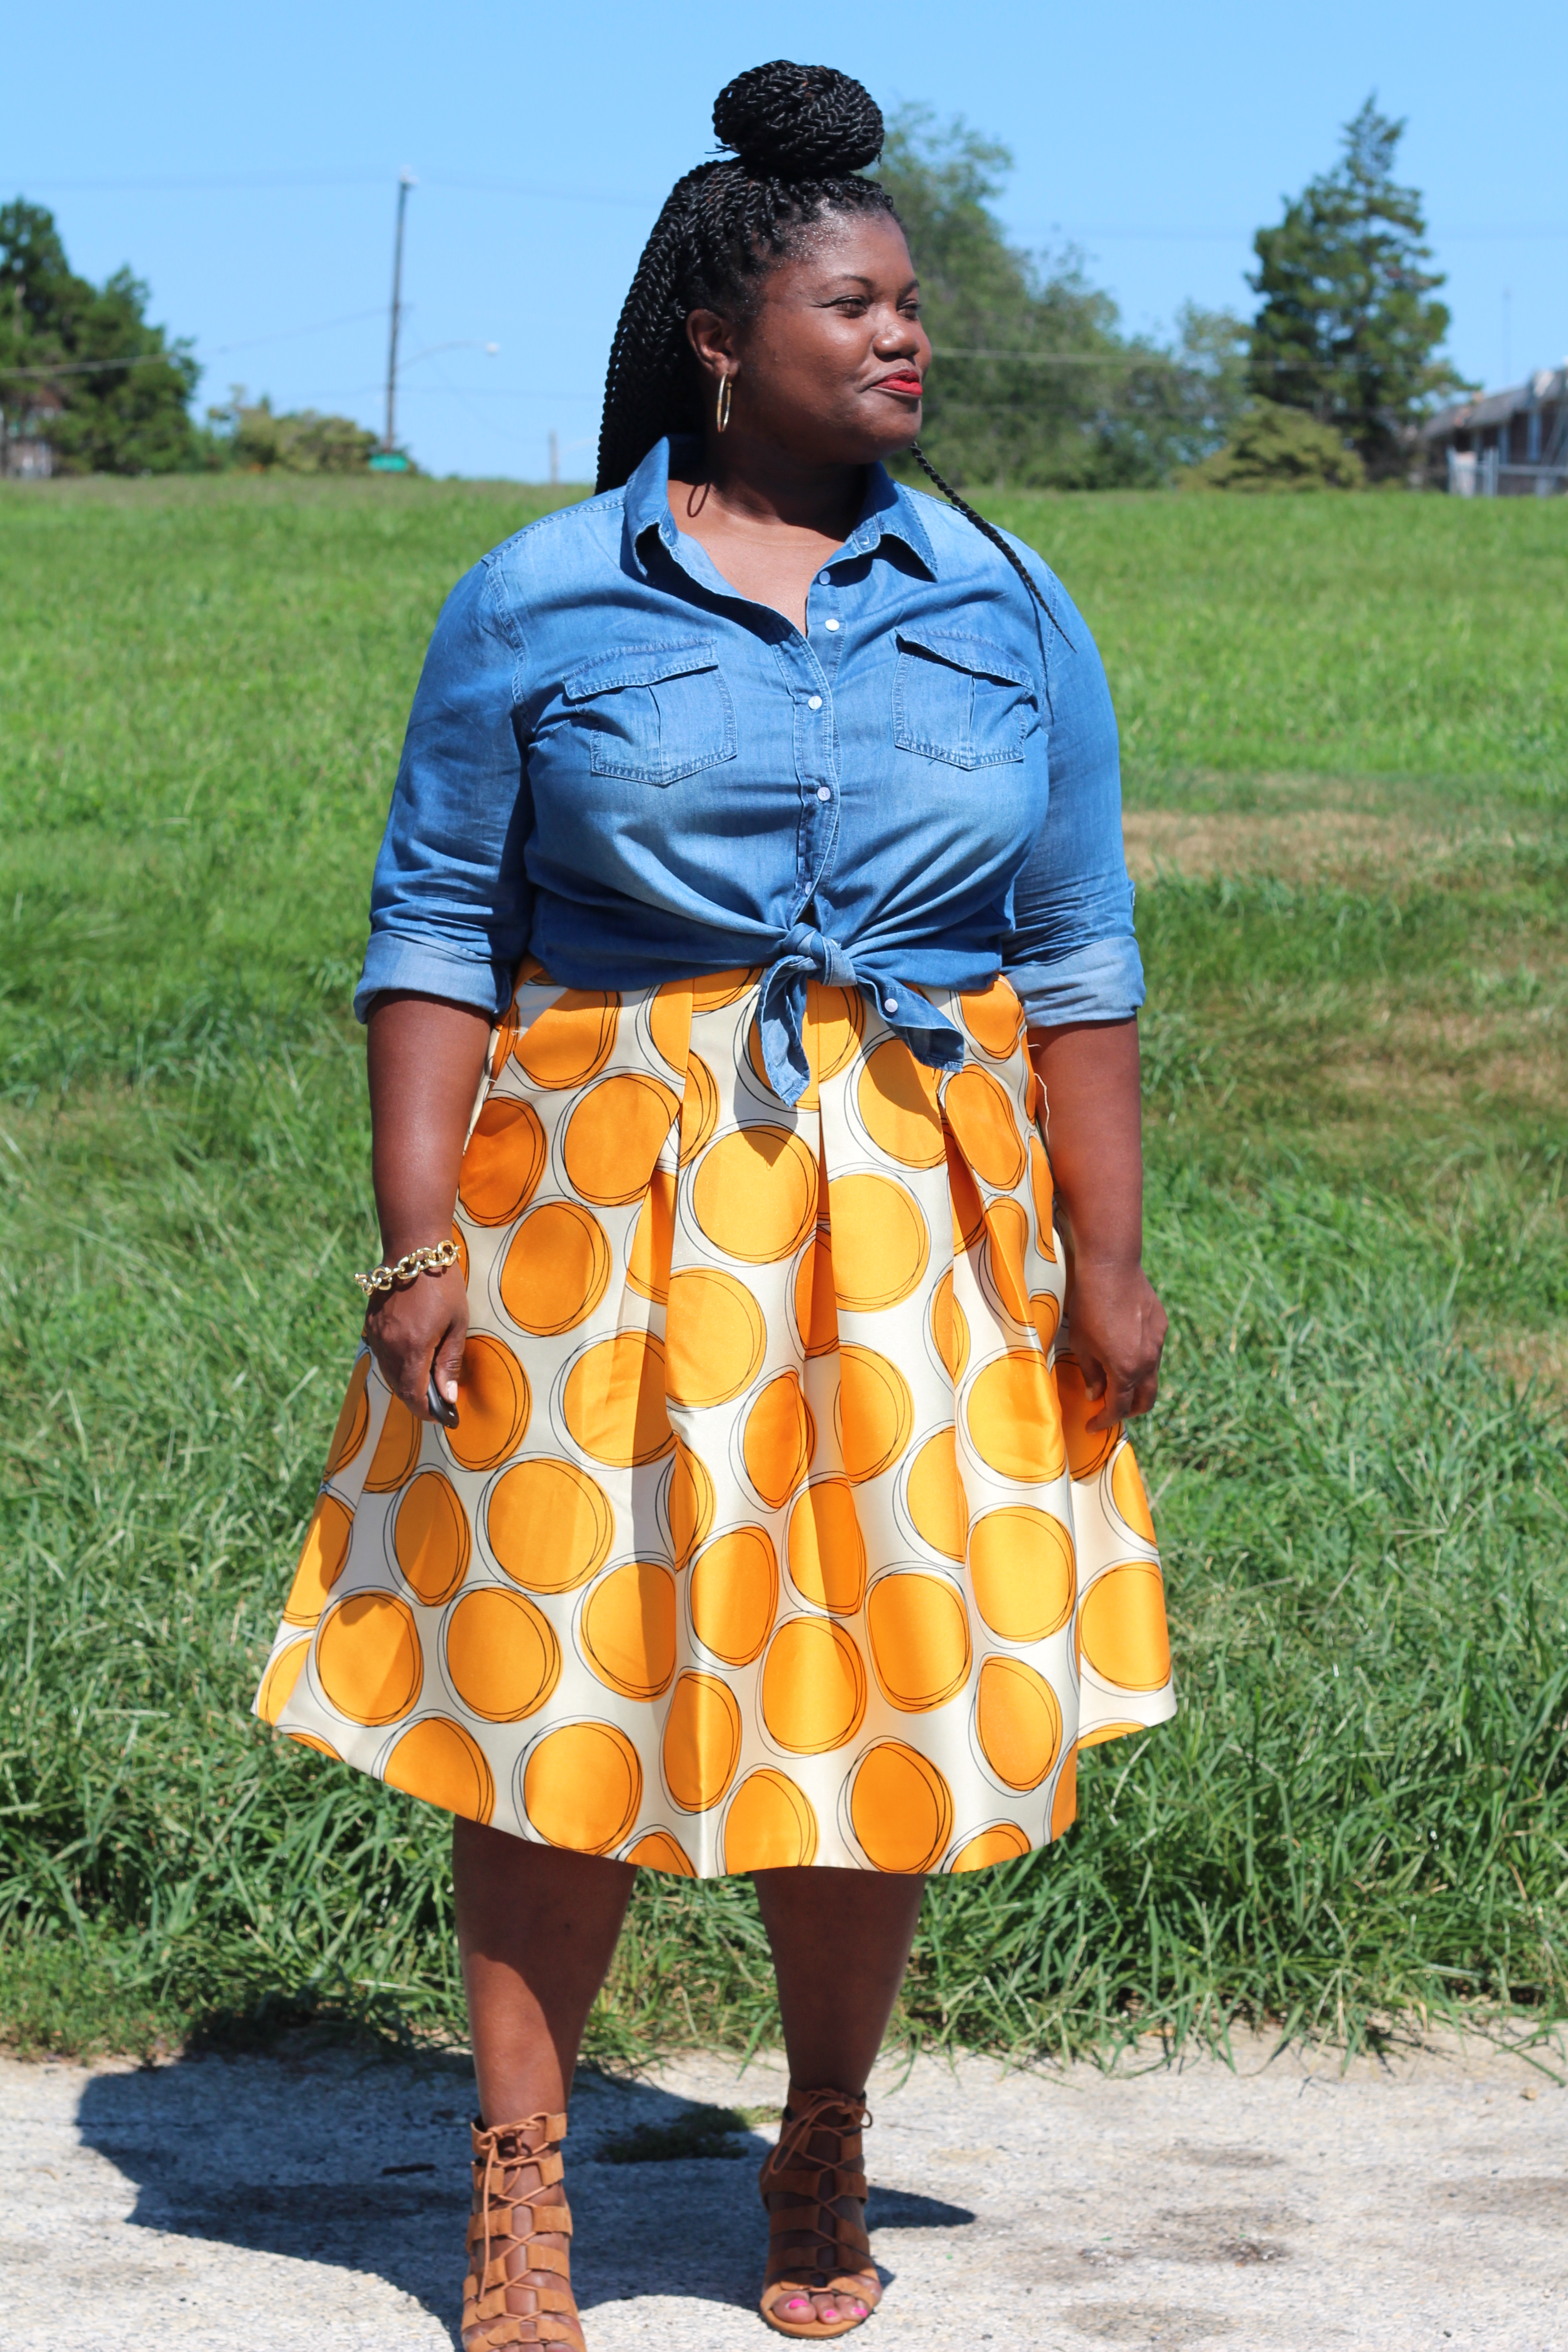 plus size fashion, lane bryant, midi skirt, plus size midi skirt, denim shirt, plus size denim shirts, lace up sandals, marc fisher, natural hair, plus size blogs, plus size bloggers, curvy women, curvy, curvy blogs, curvy bloggers, plus size fashion blogs, plus size fashion bloggers